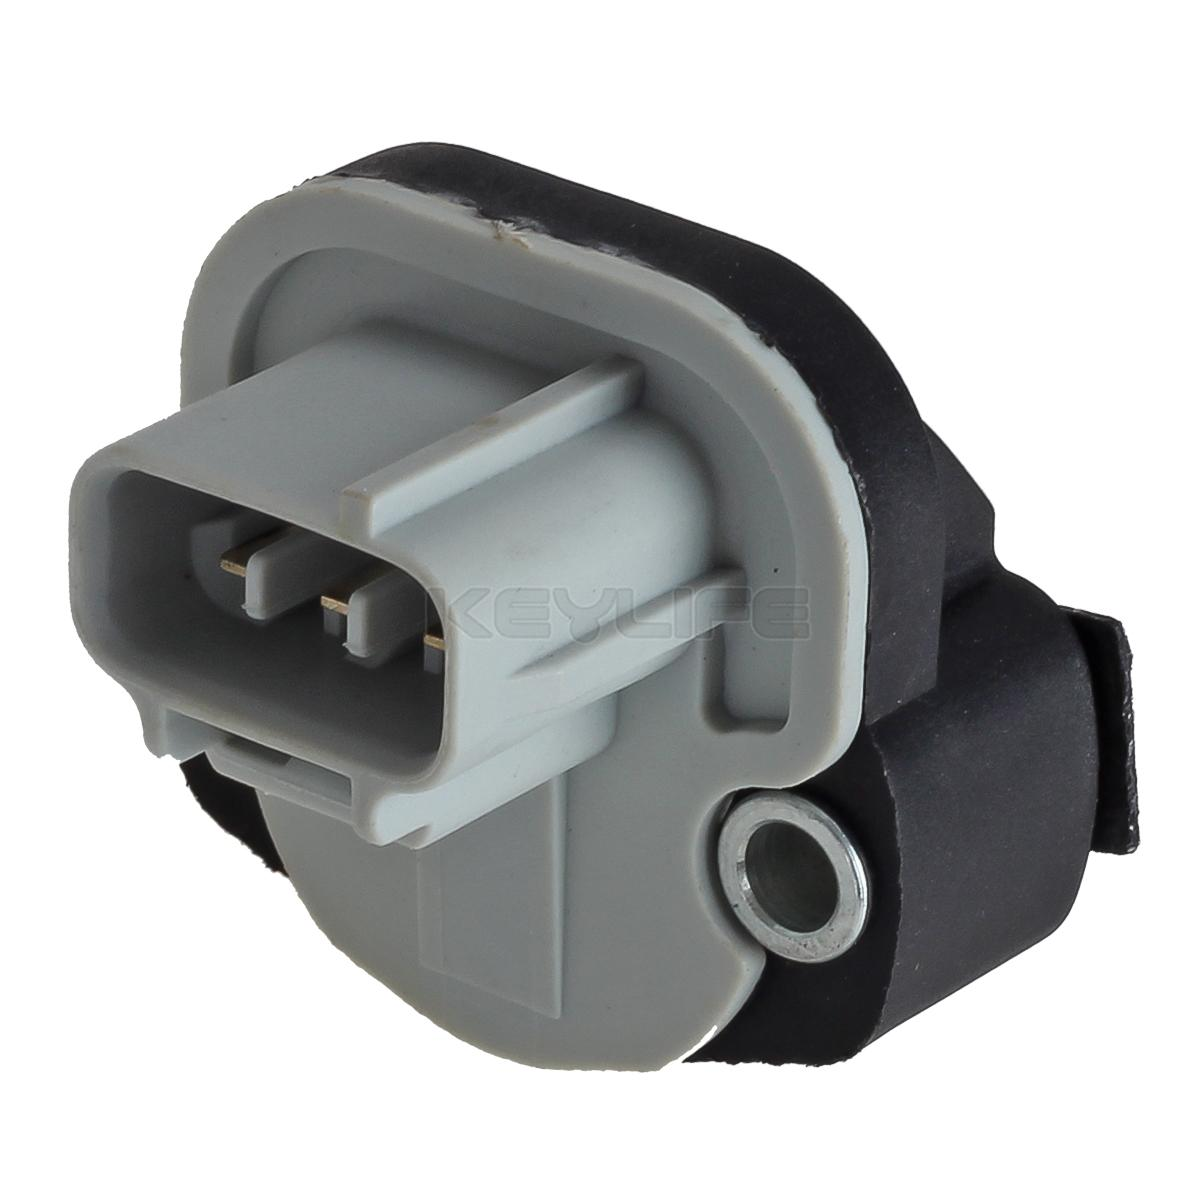 Tps Throttle Position Sensor For 98 2007 Dodge Durango